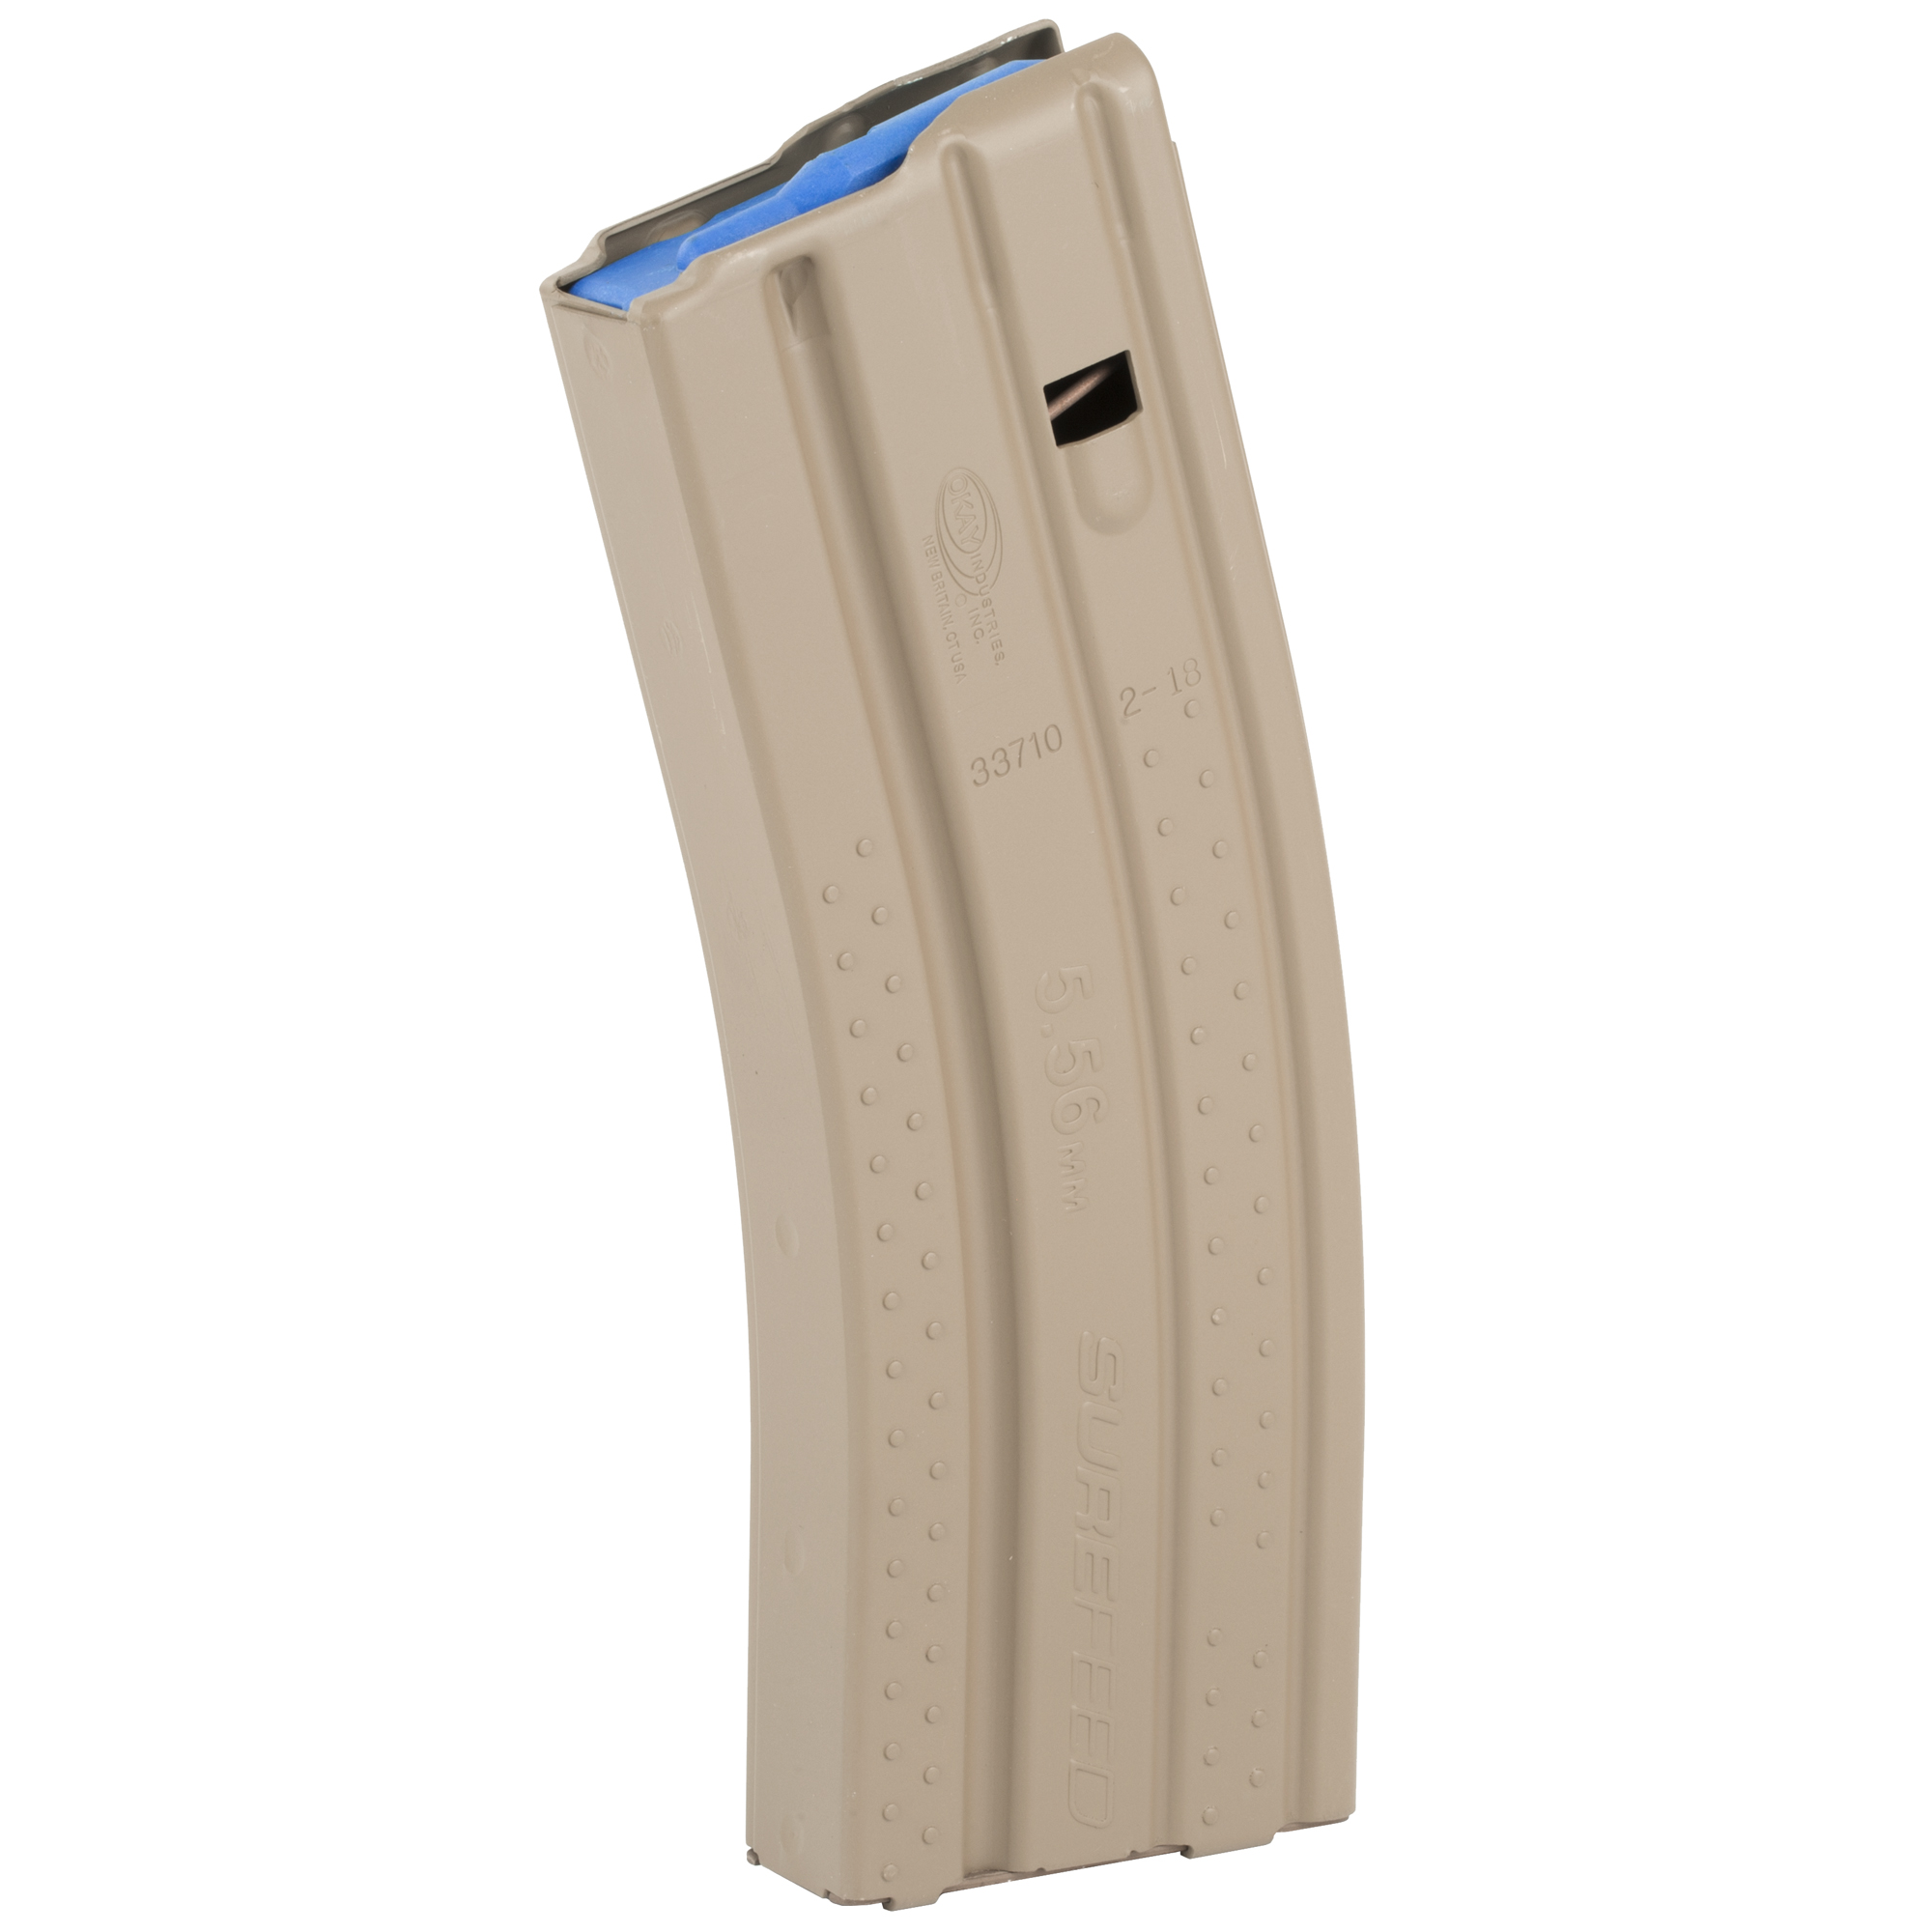 """SureFeed(R) E2 Magazines provide the superior performance professionals demand. They are 100% made in the U.S.A"""" with all-American components"""" and rigorously tested for quality."""